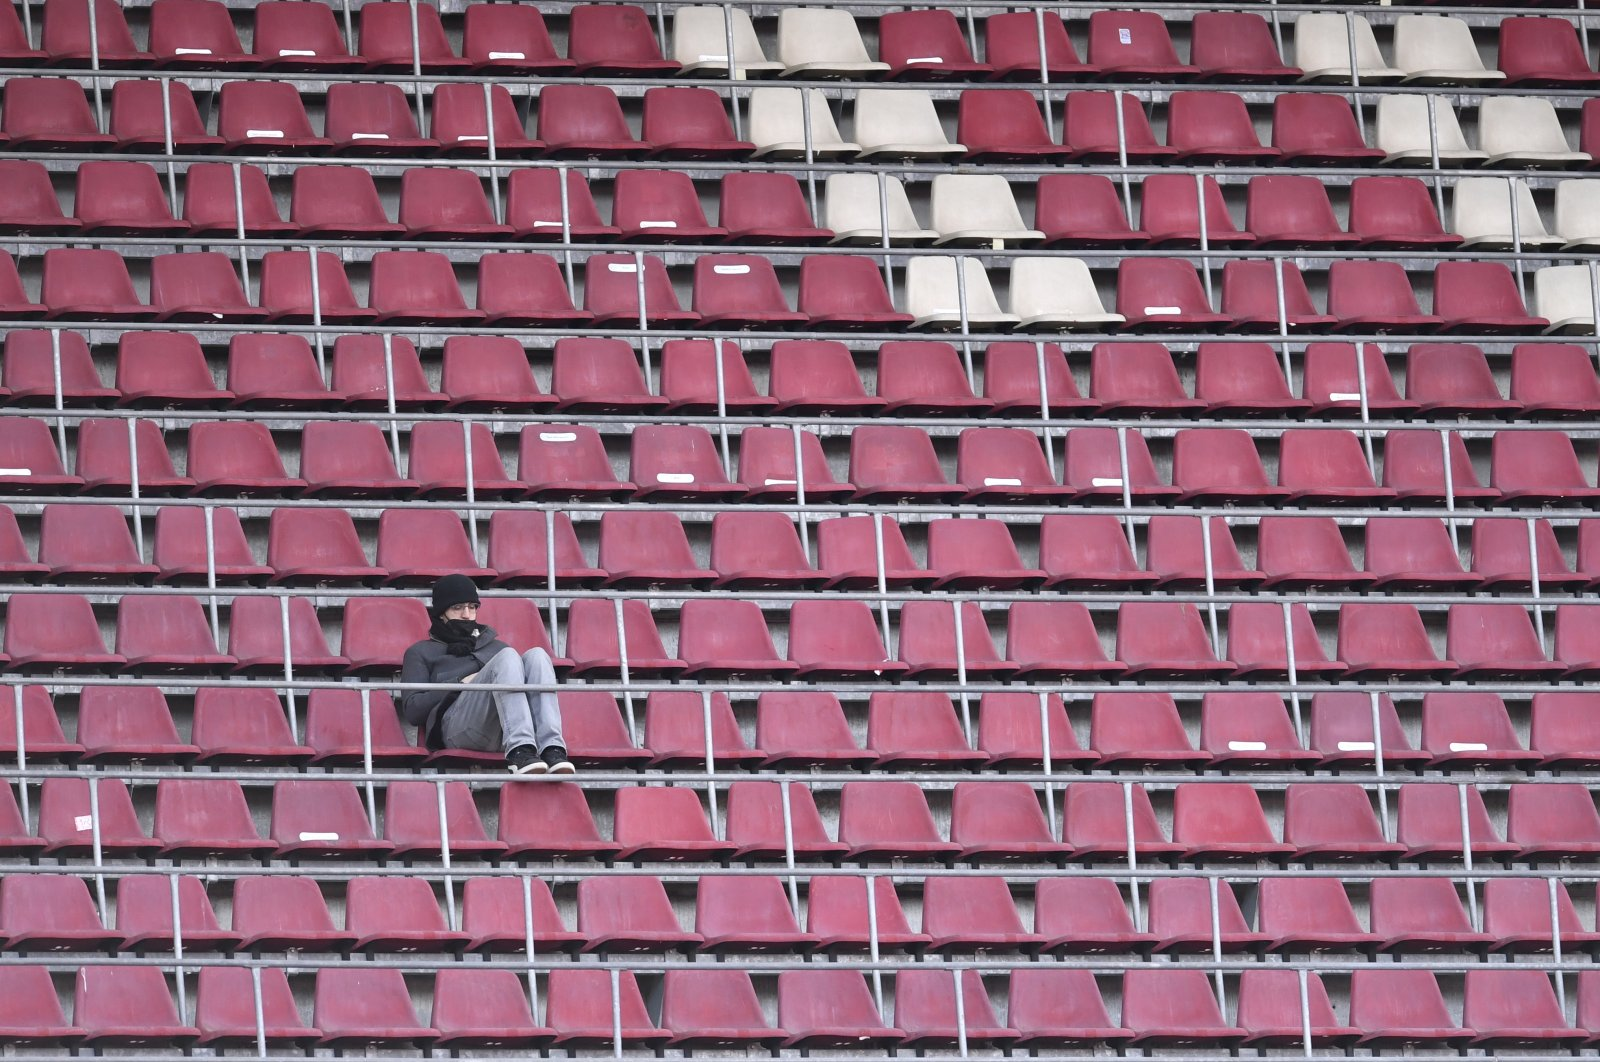 A person sits on the empty stands during the German Bundesliga match between Cologne and Dortmund at the RheinEnergieStadion stadium, Cologne, Germany, March 20, 2021. (AP Photo)